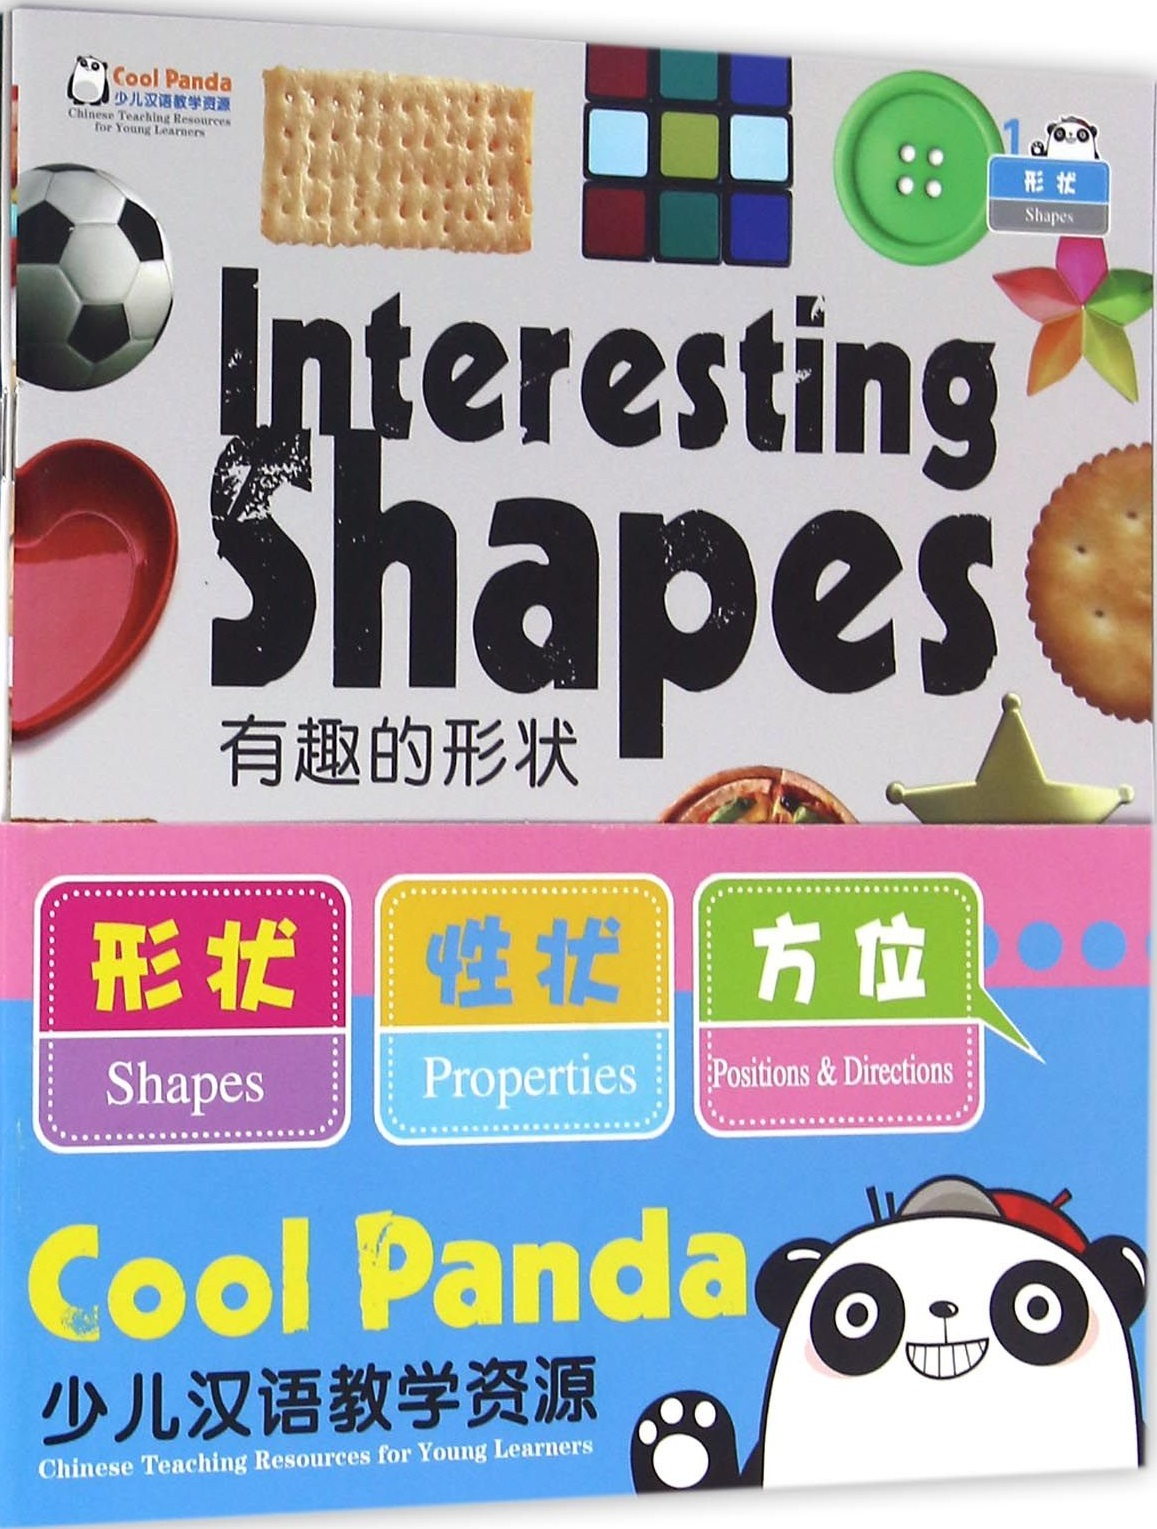 Shapes, Properties, Positions and Directions - Cool Panda Chinese Teaching Resources for Young Learners Level 1